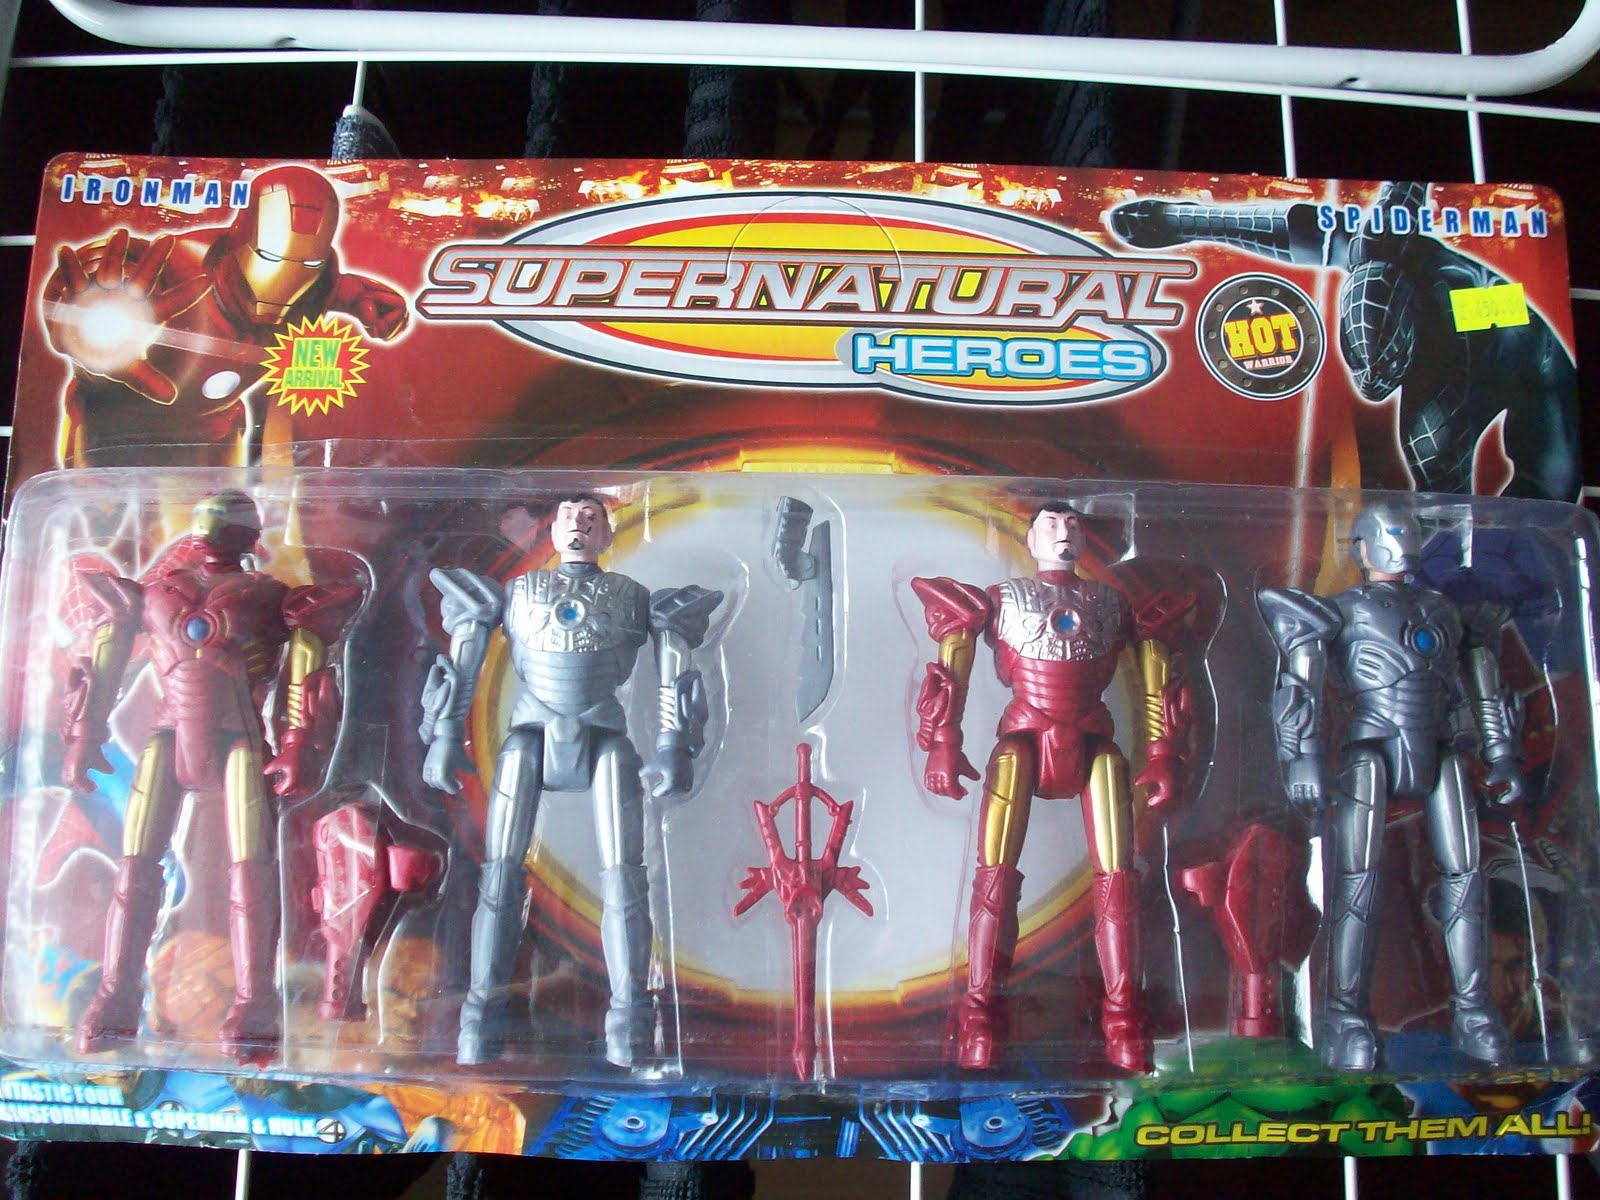 i found these absolutely craptastic iron man bootleg figures at a kiosk inside the leningradskaya railway station fifteen minutes before we left back to bootleg iron man 2 starring